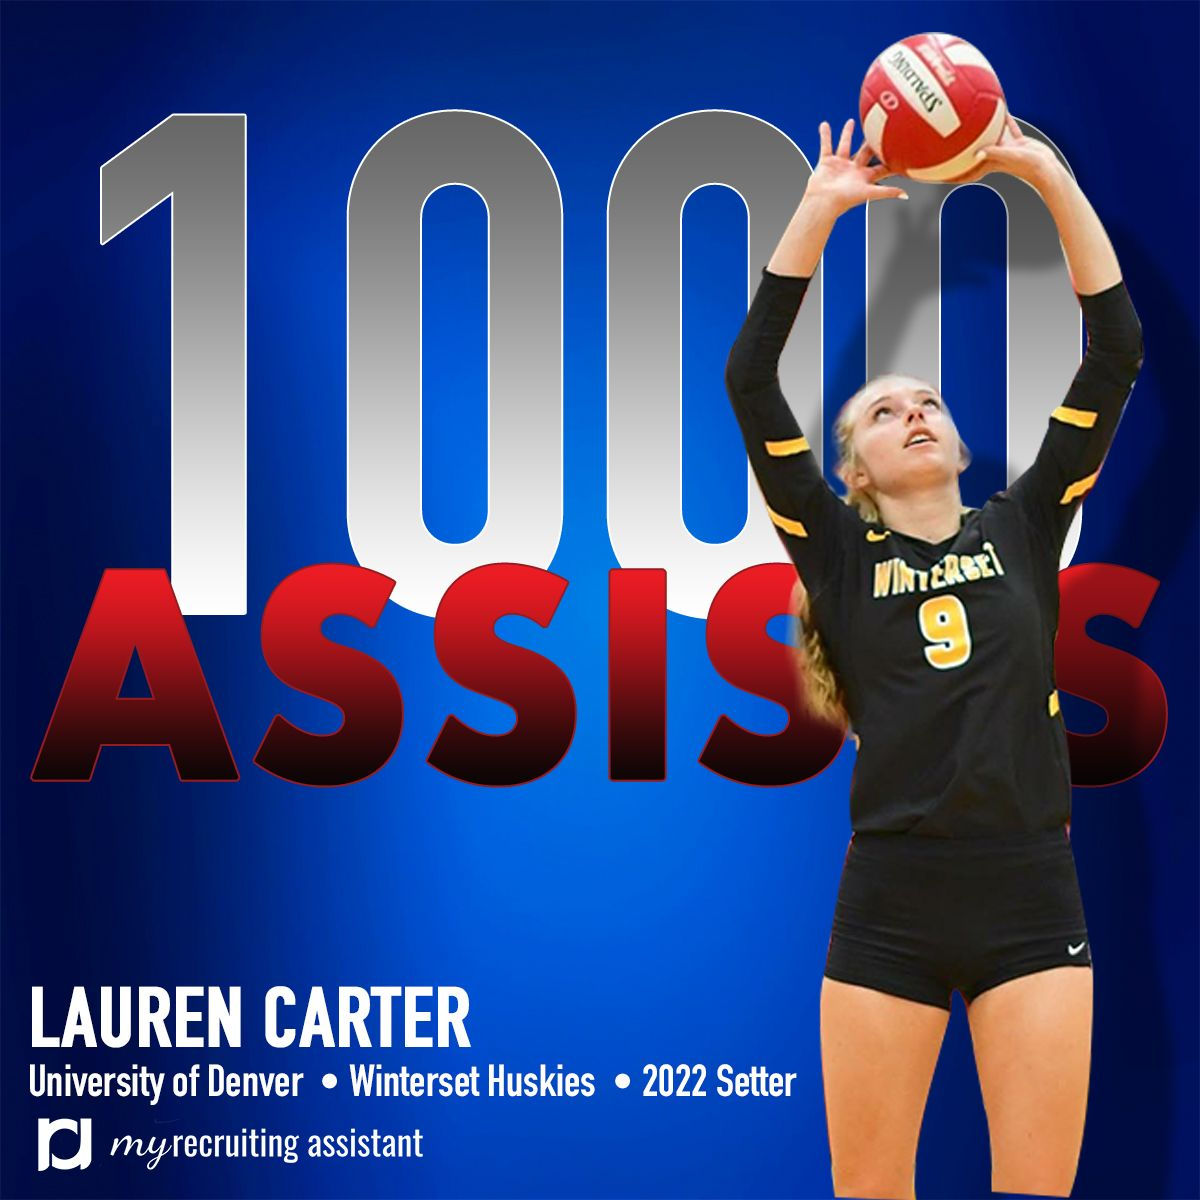 Lauren Carter Class Of 2022 Setter Committed To The University Of Denver University Of Denver Lauren Carter Recruitment